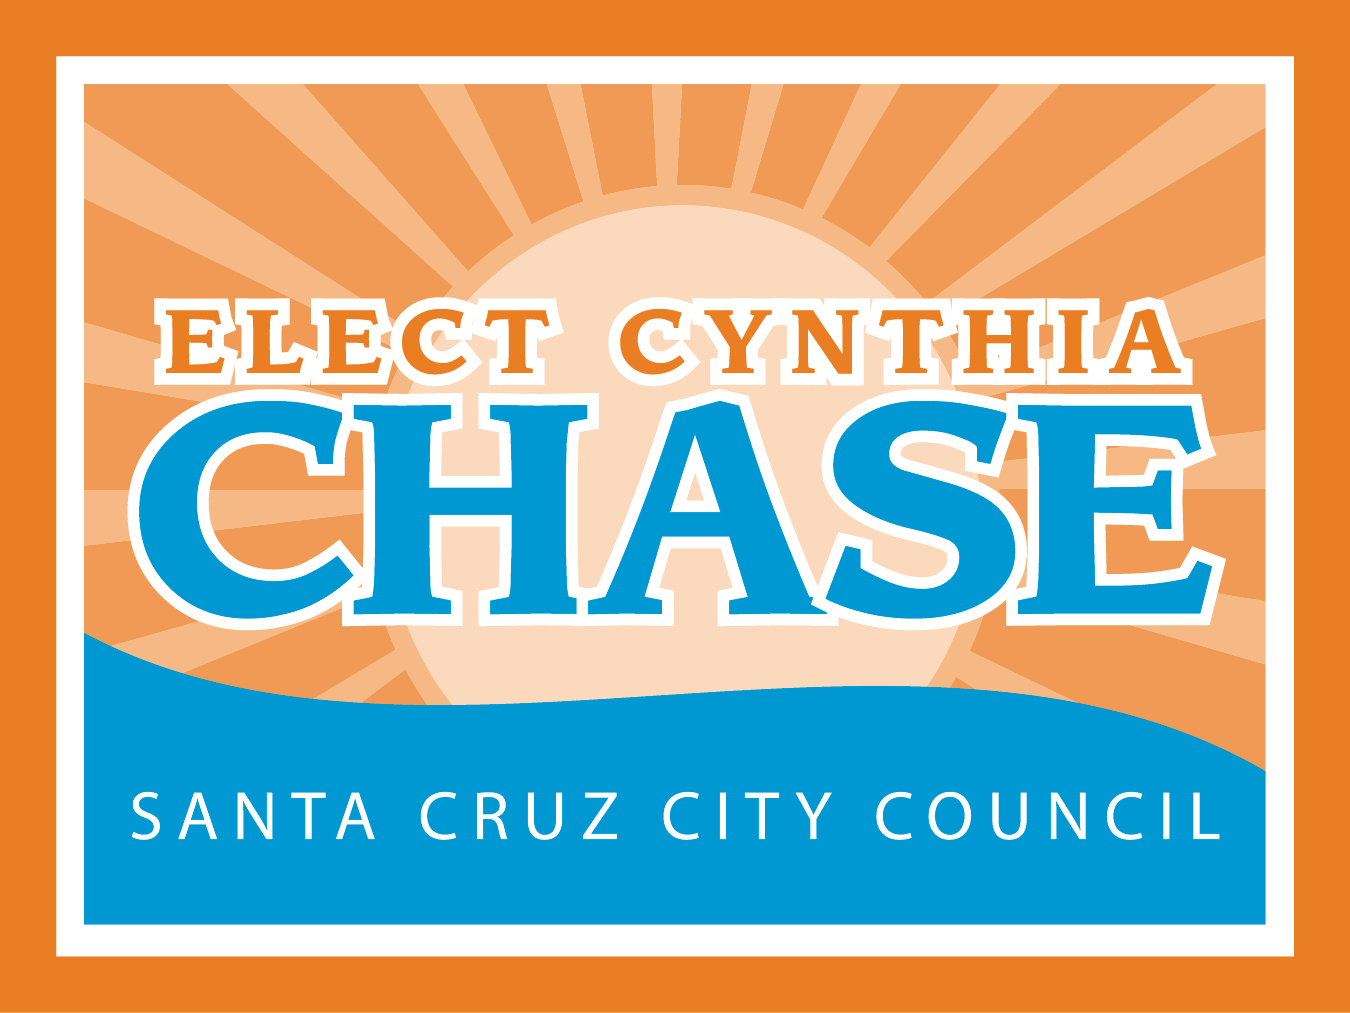 Cynthia Chase for Santa Cruz City Council